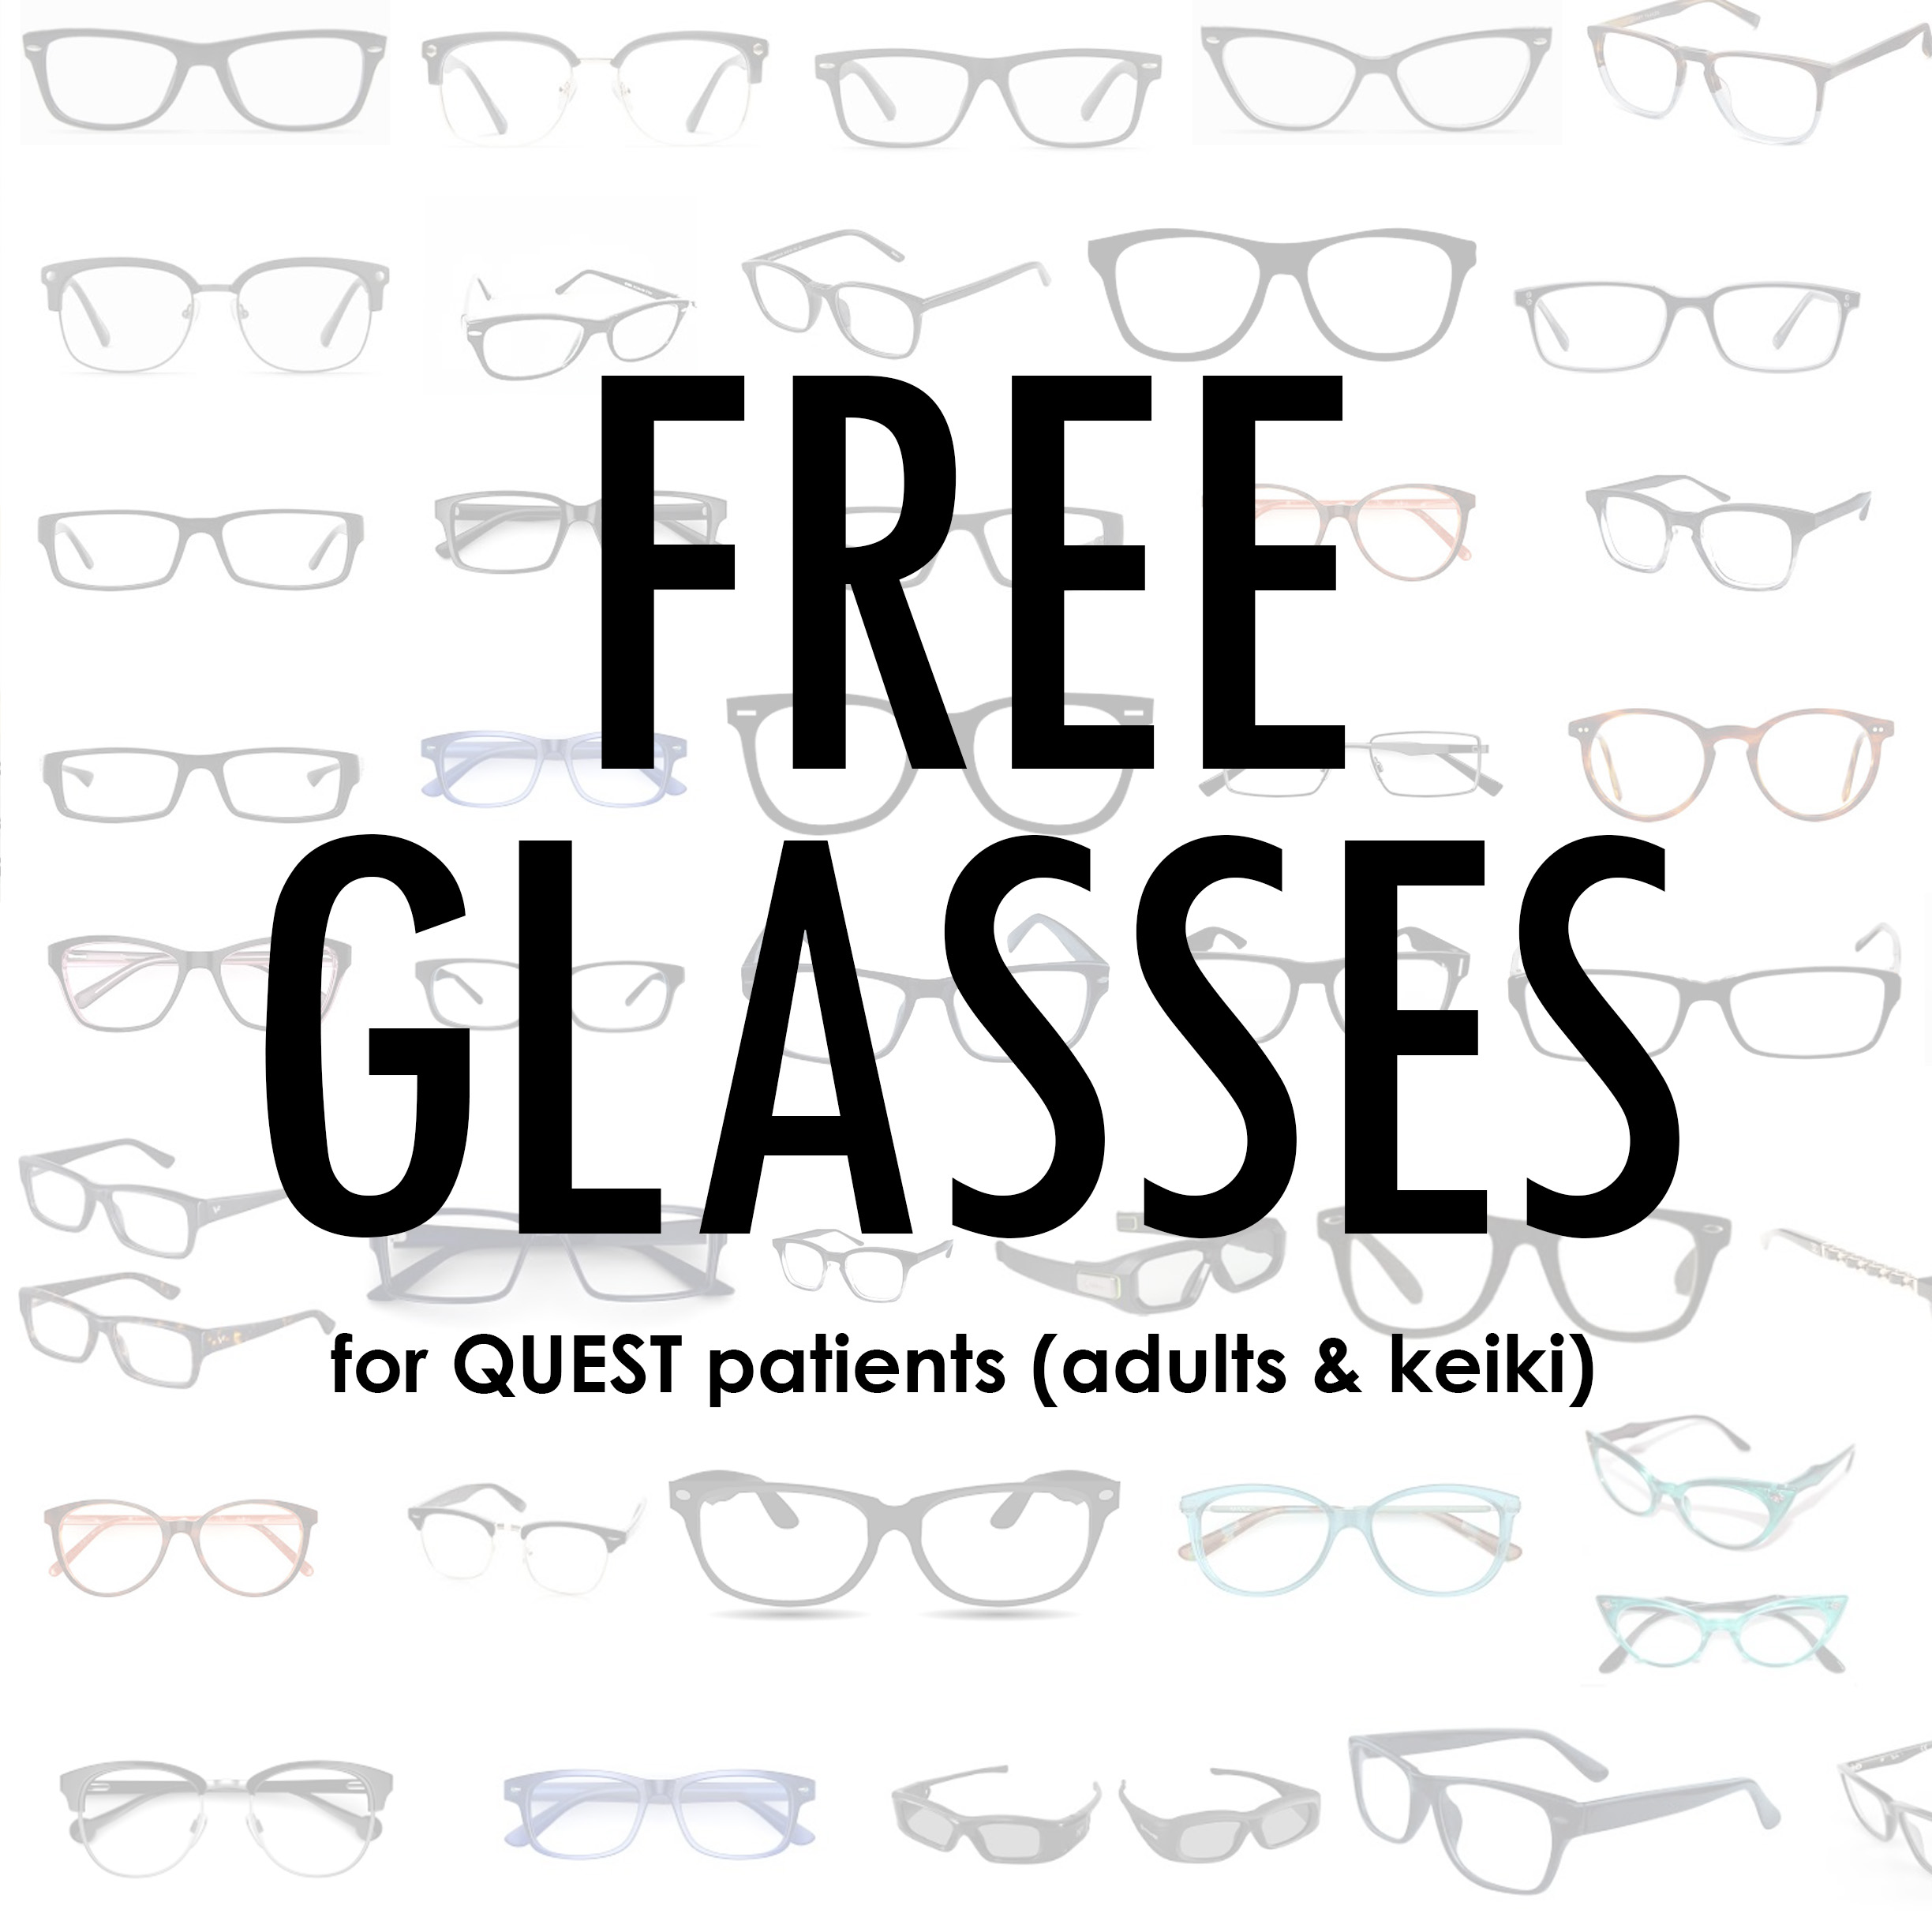 Freeglasses